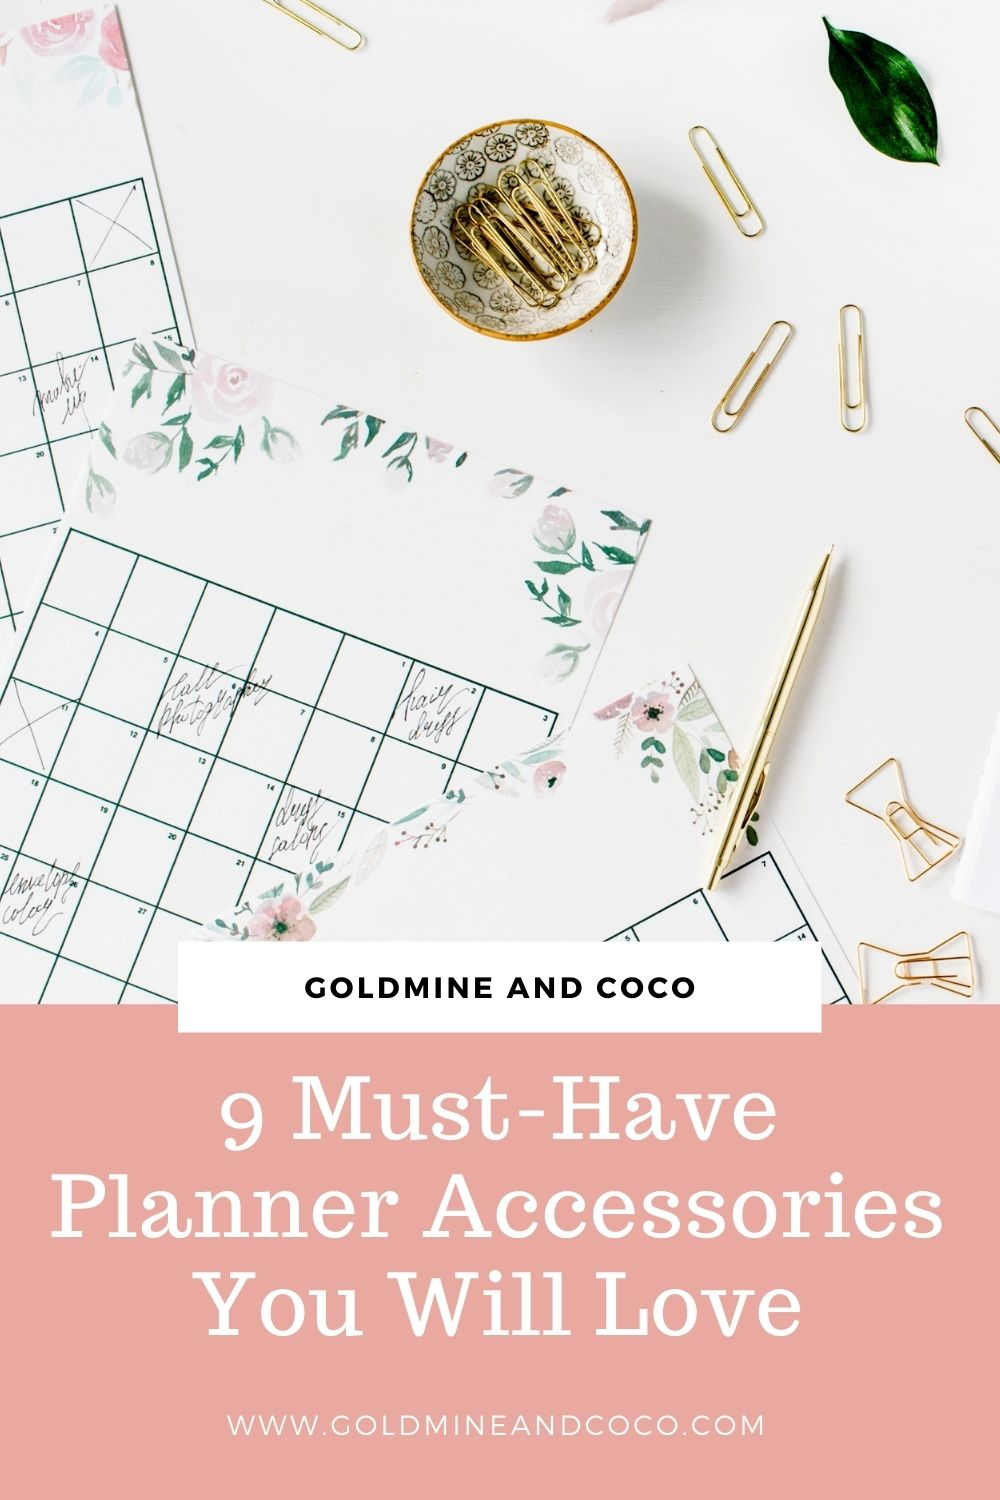 9 Must-Have Planner Accessories You Will Love